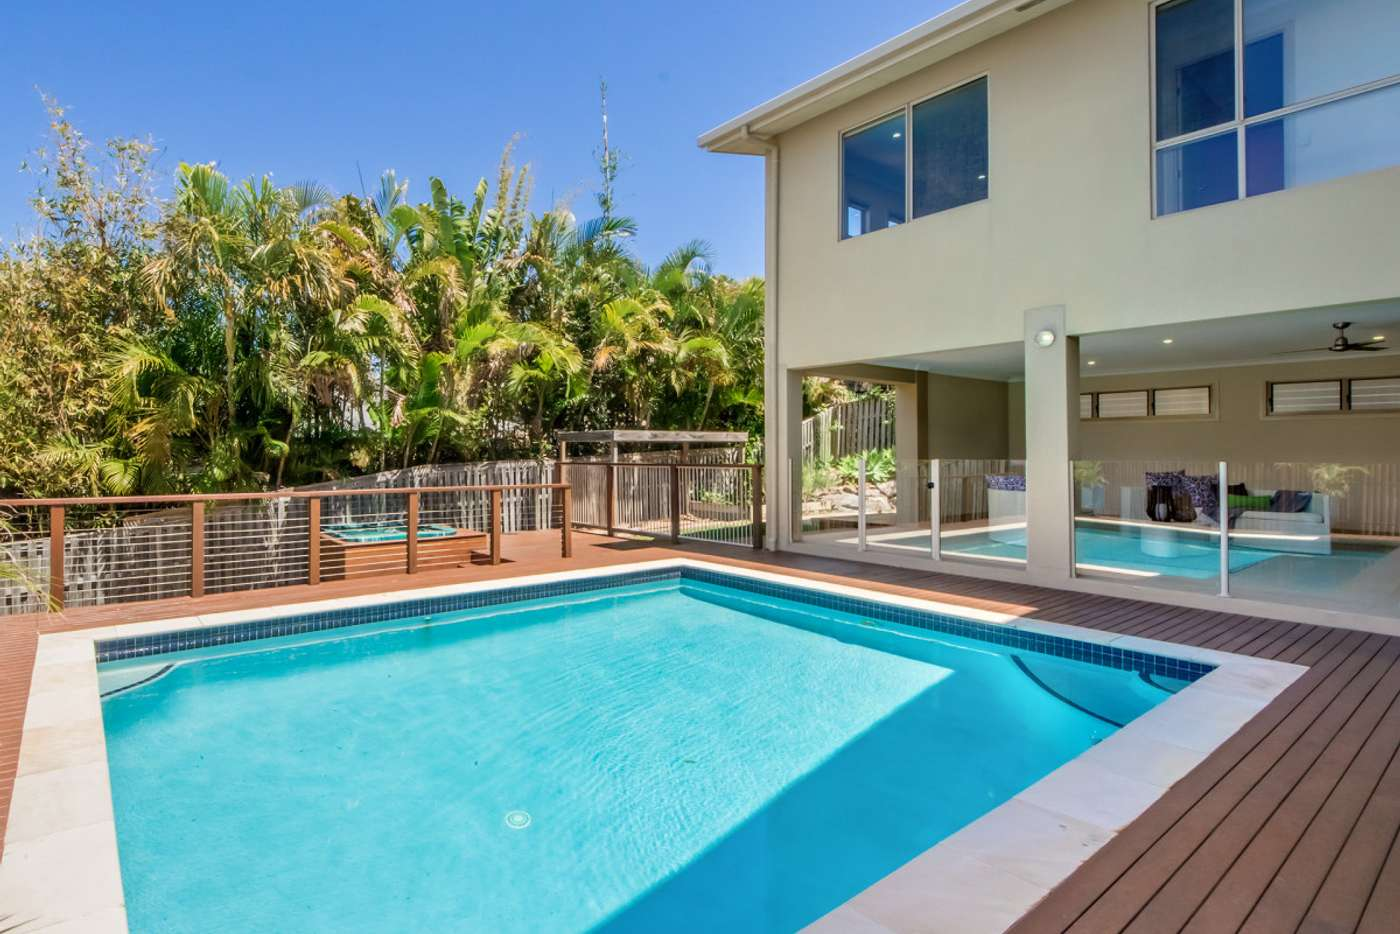 Main view of Homely house listing, 9 Stockport Court, Reedy Creek QLD 4227